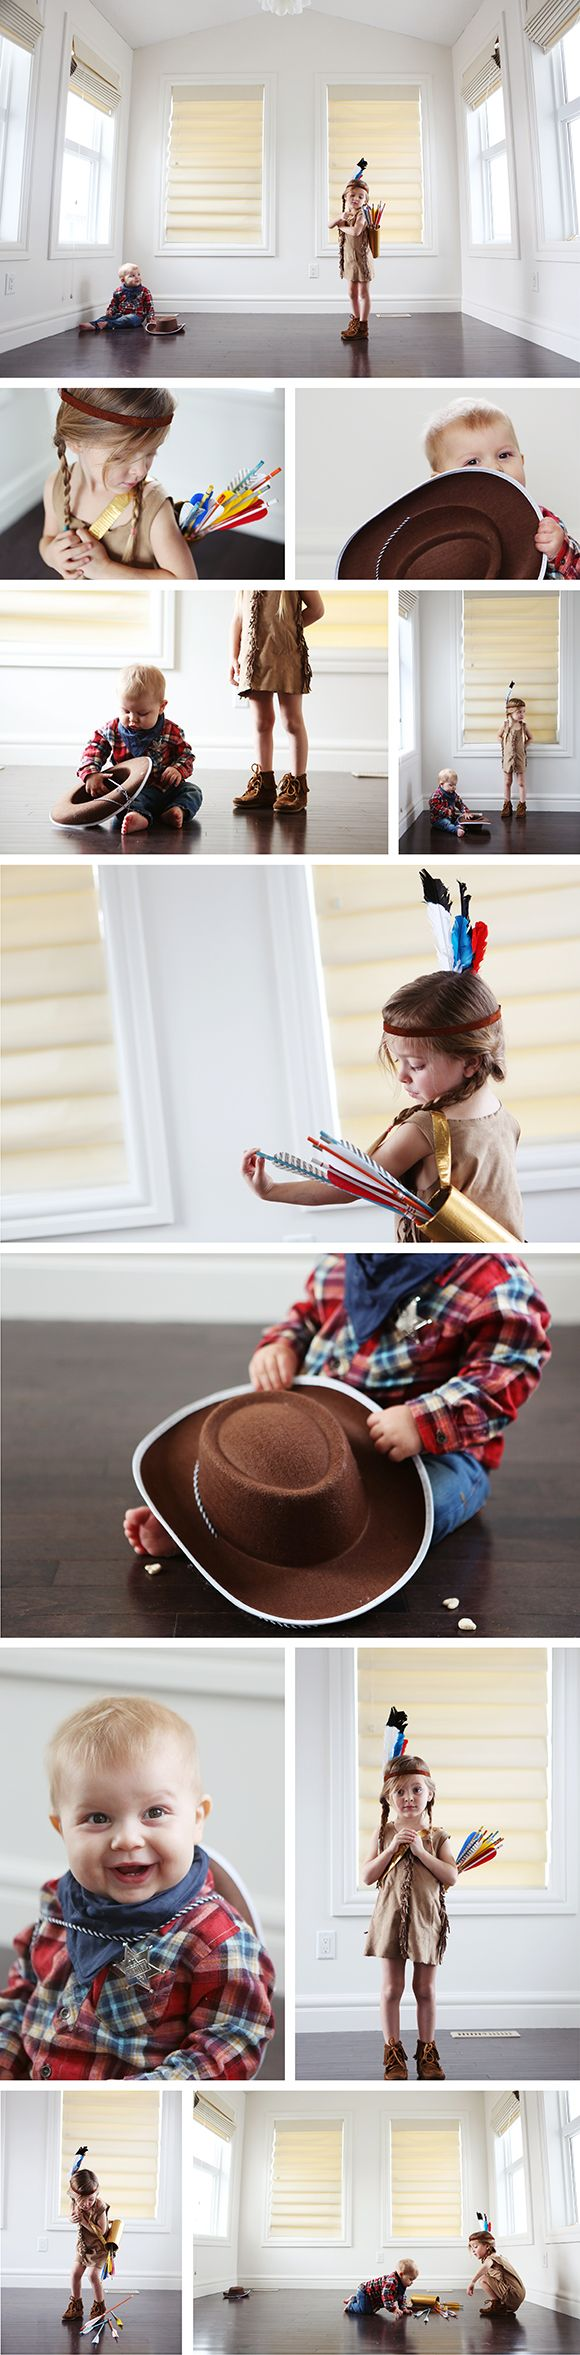 halloween costumes- little cowboy and little indian girl